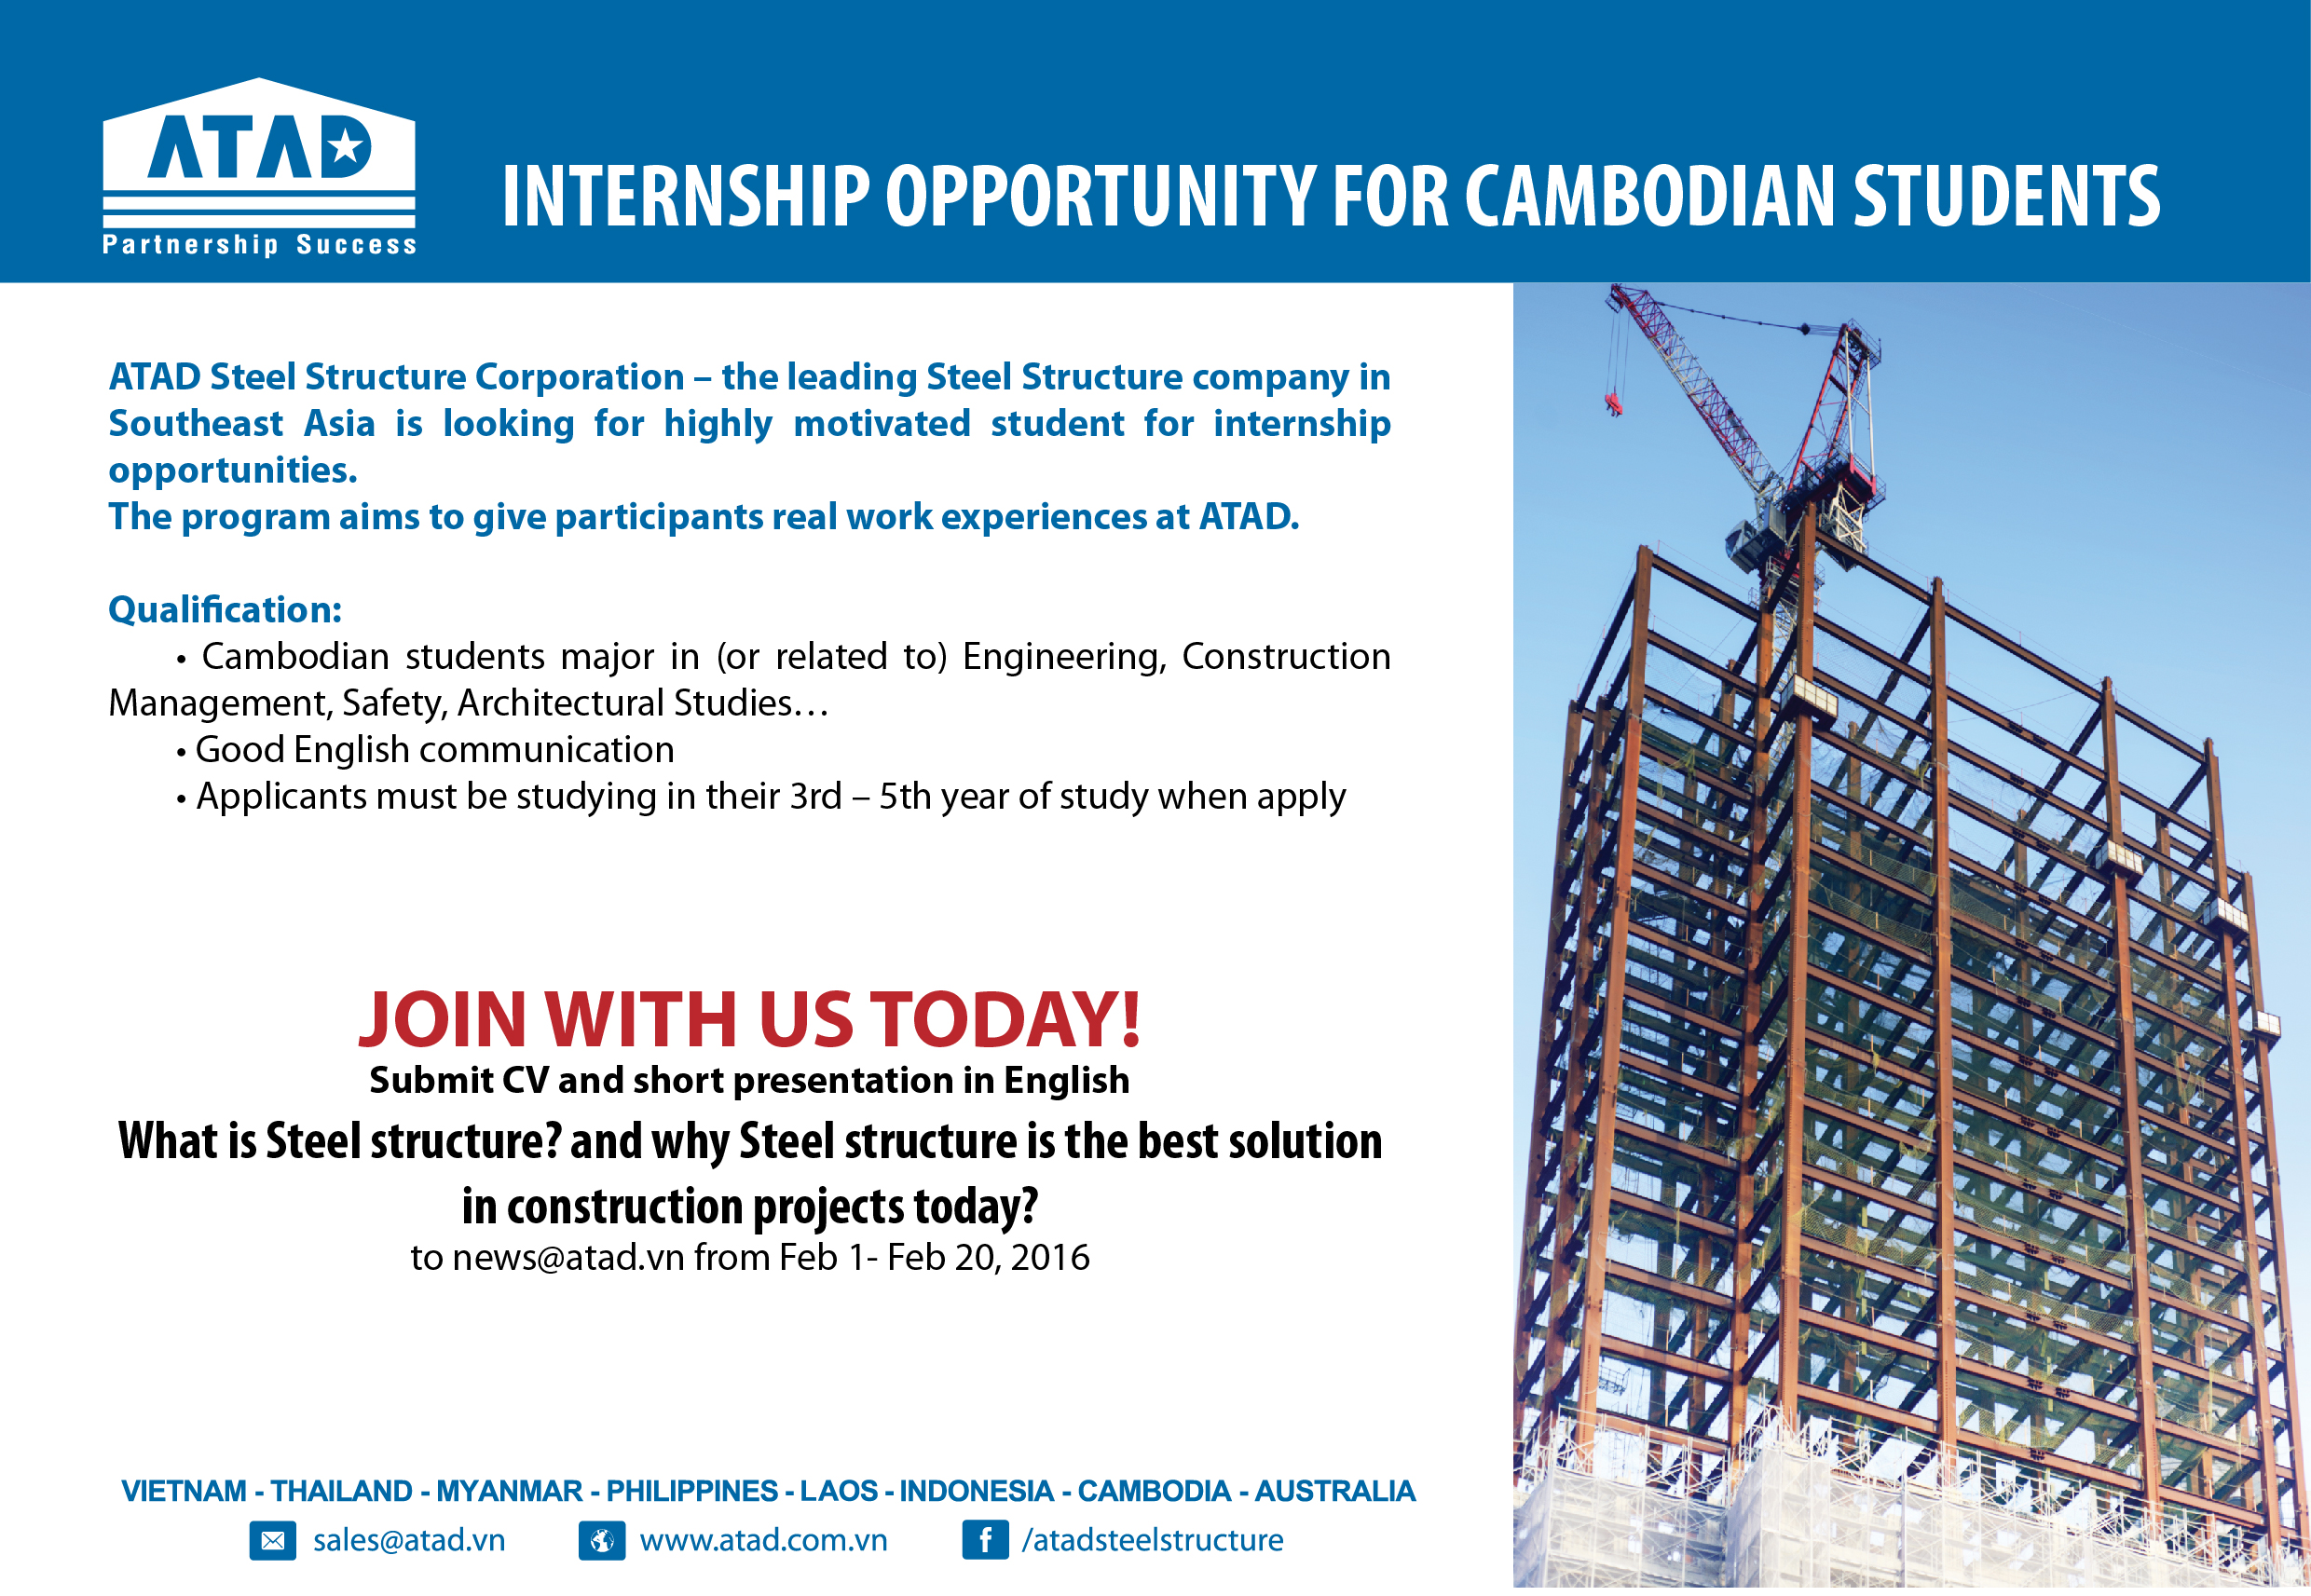 Internship opportunities for Cambodian students